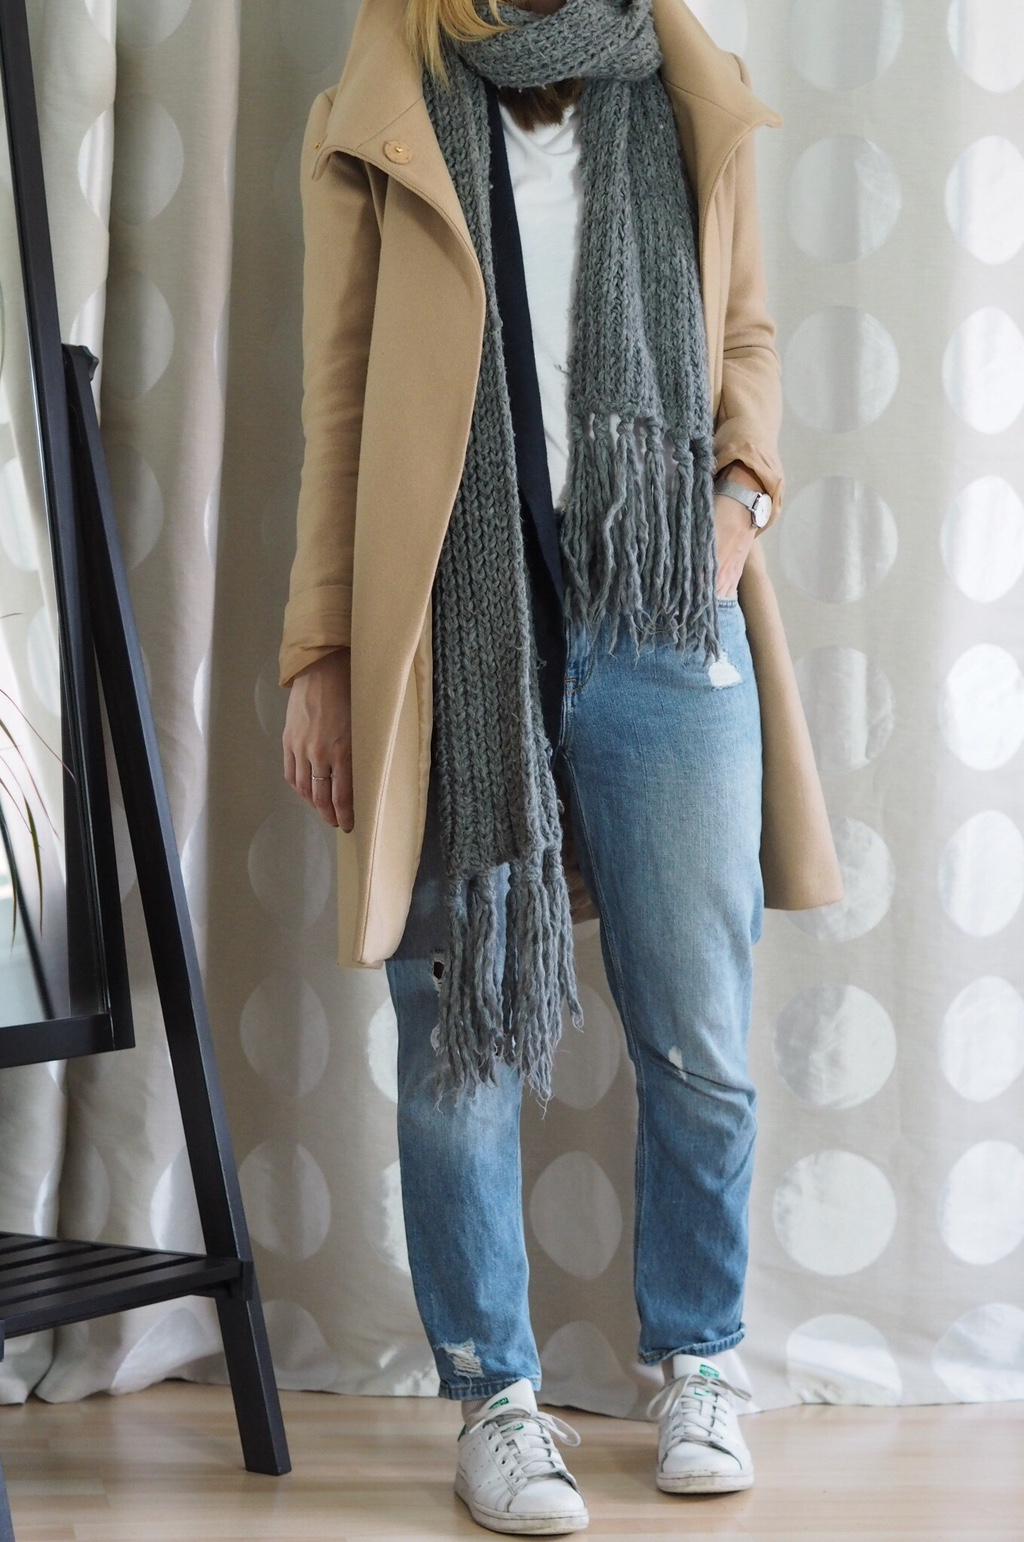 Girlfriend Jeans Winter Mantel Outfit